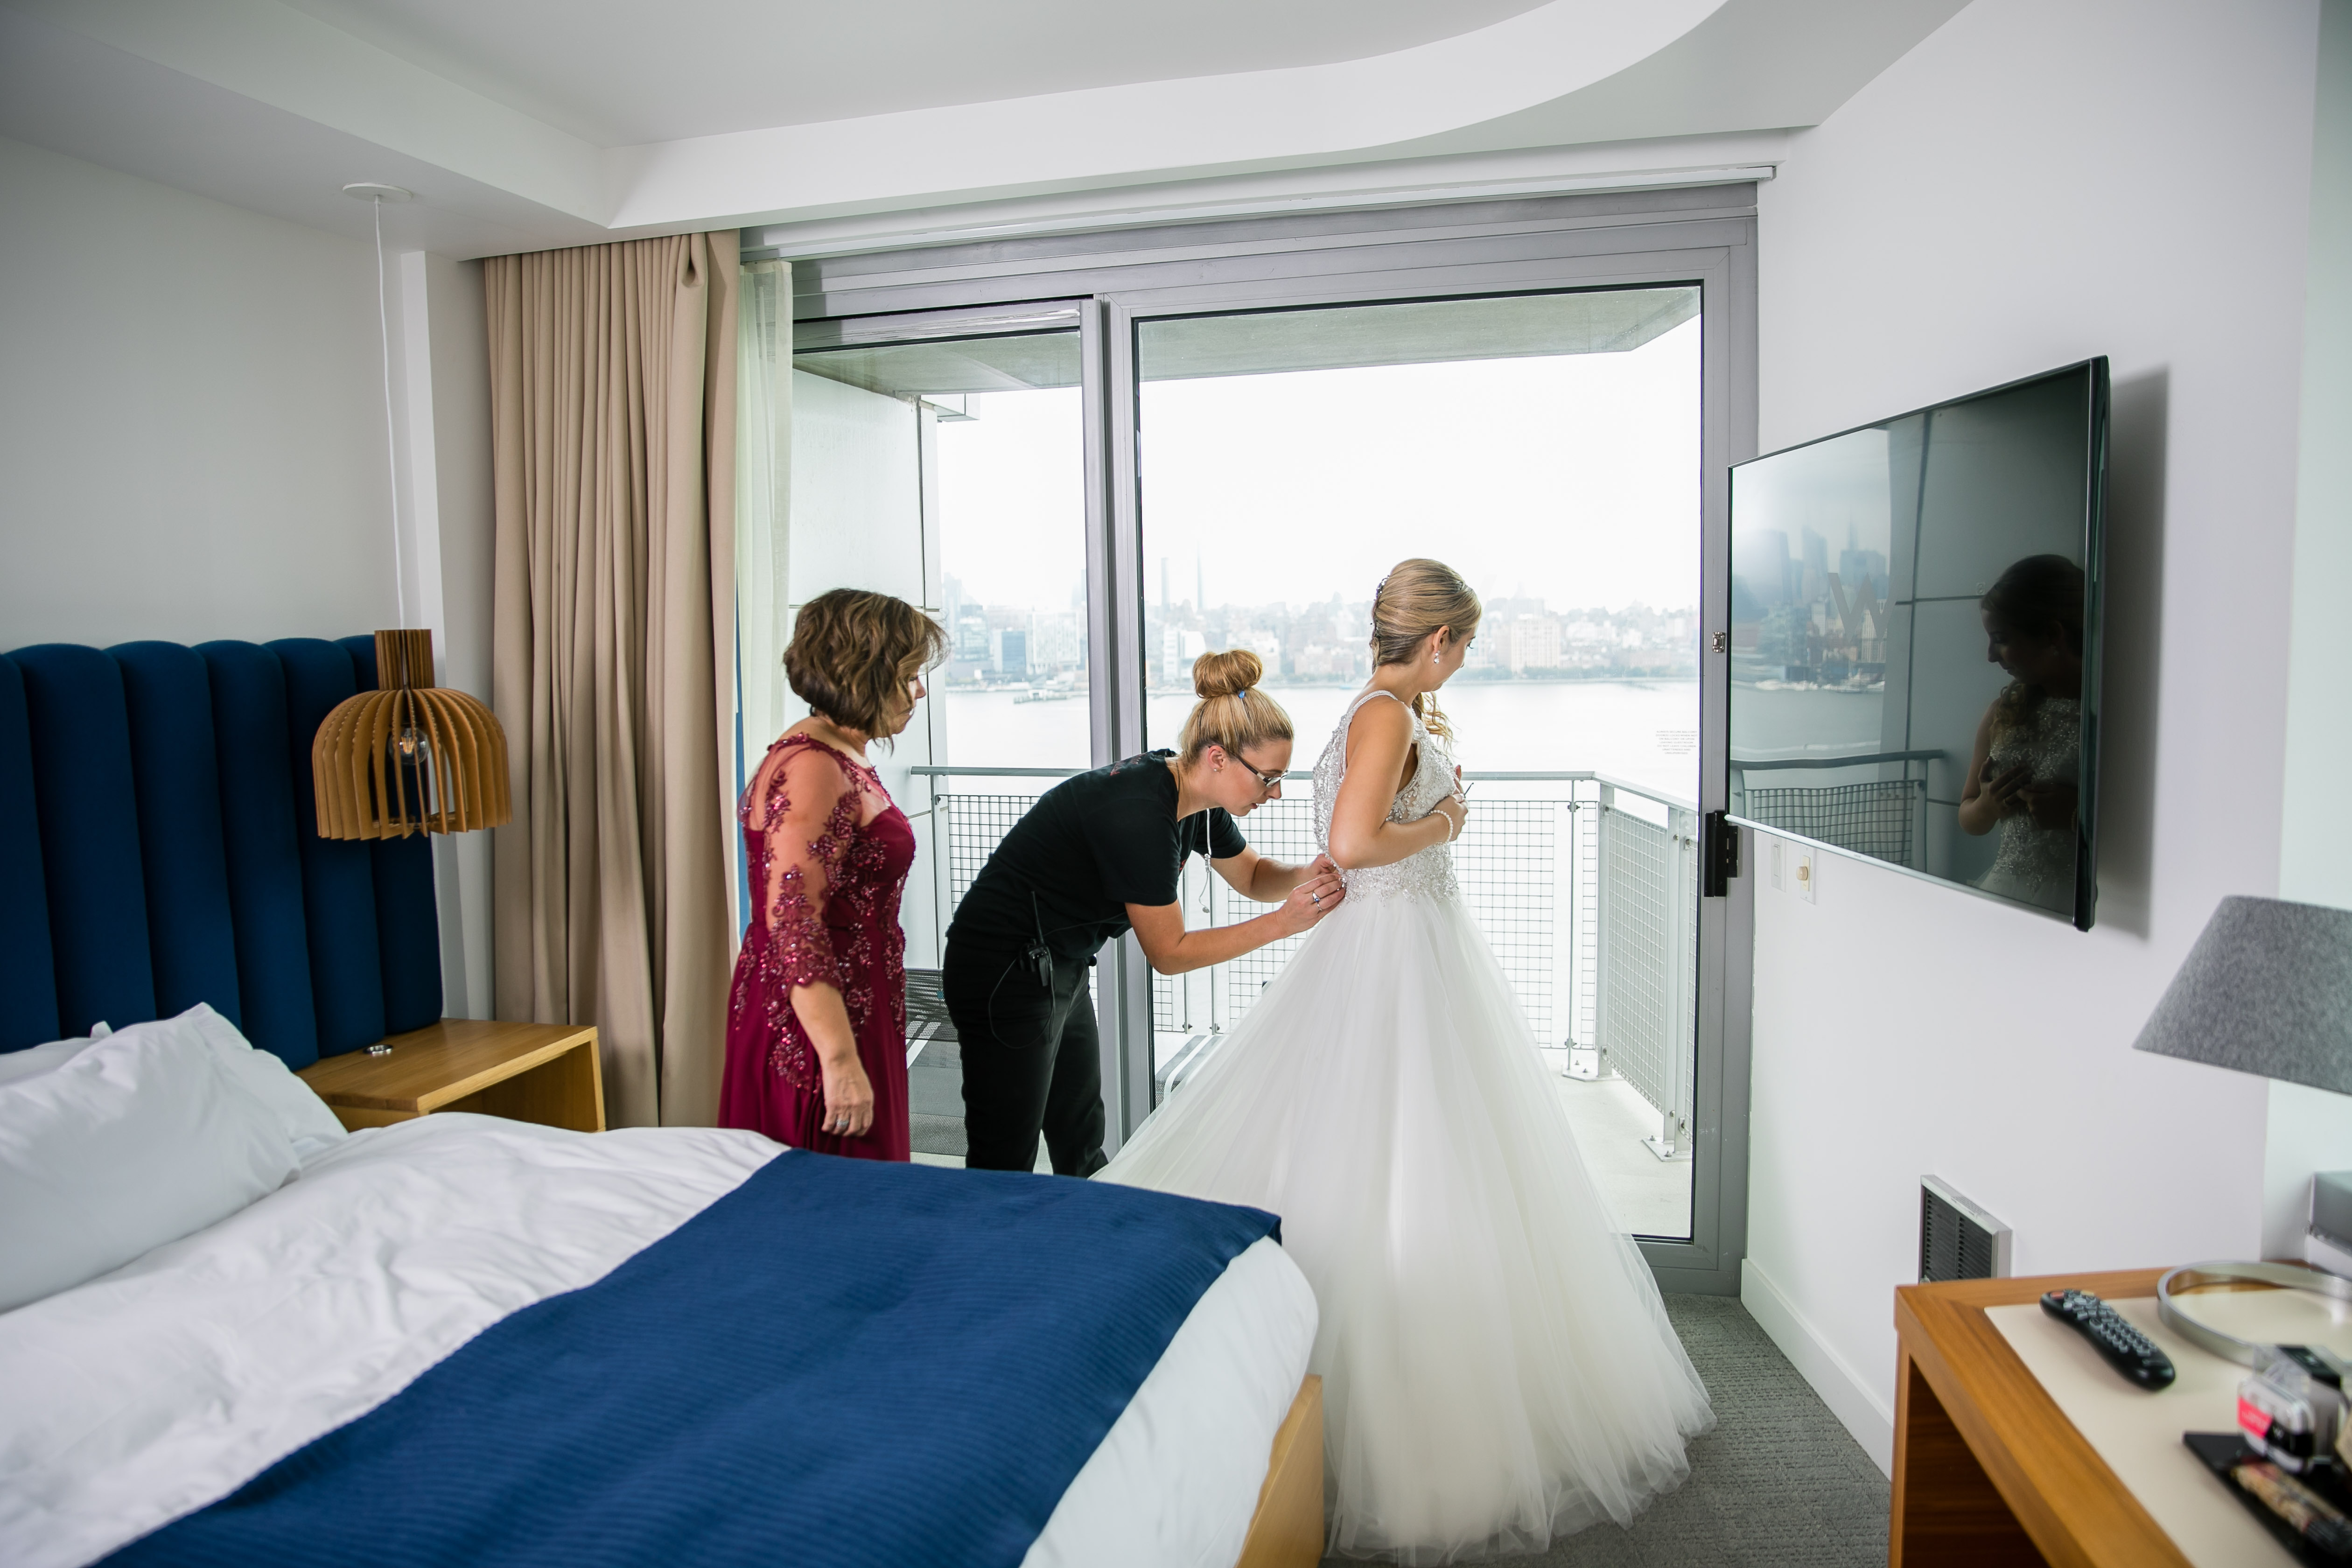 wedding planner zipping up bride's dress with mother of the bride